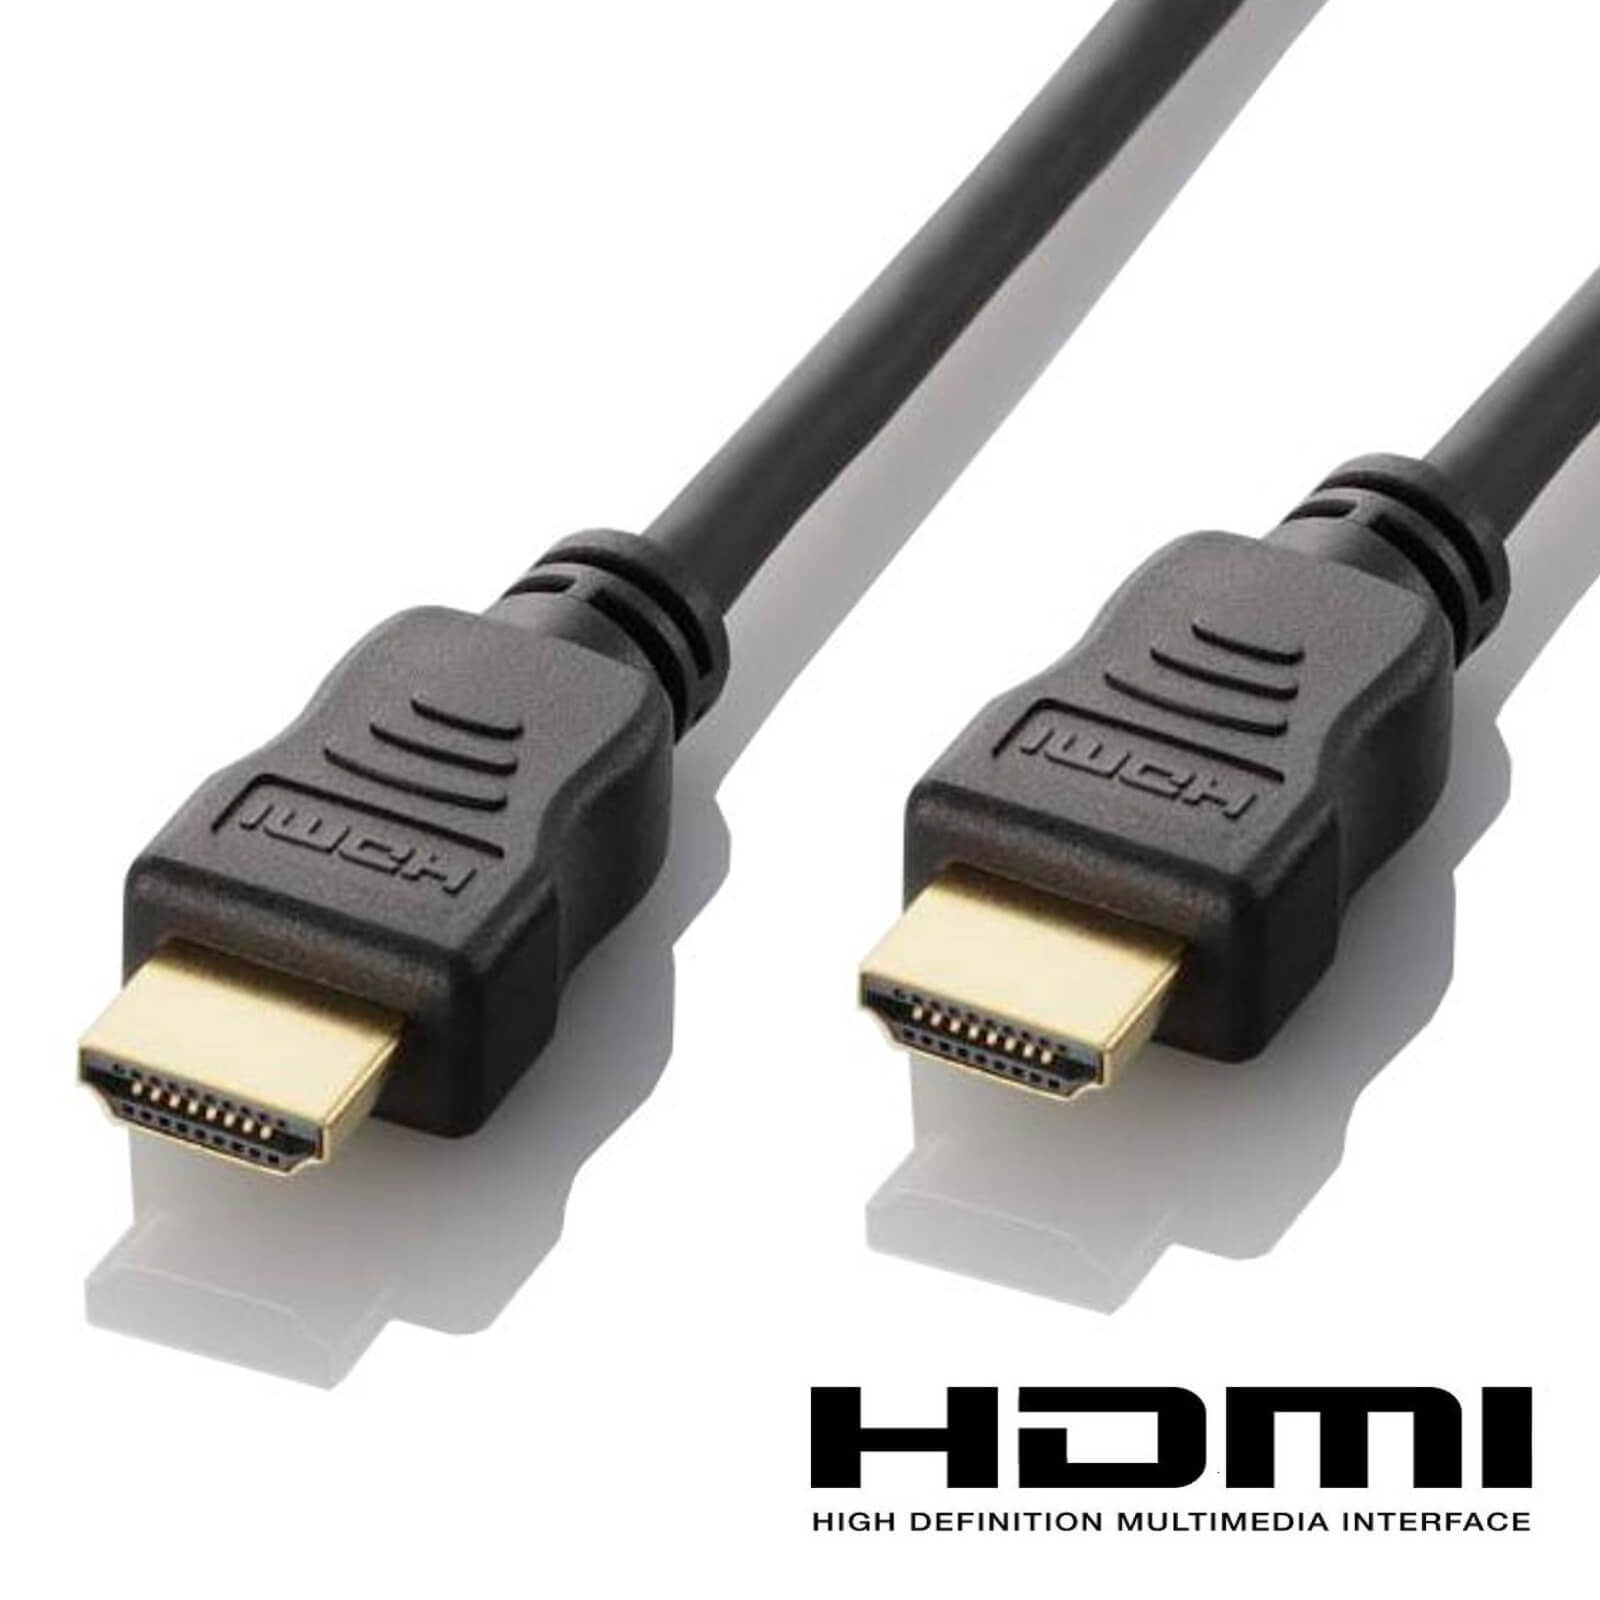 hight resolution of hdmi cable connector wiring diagram free picture